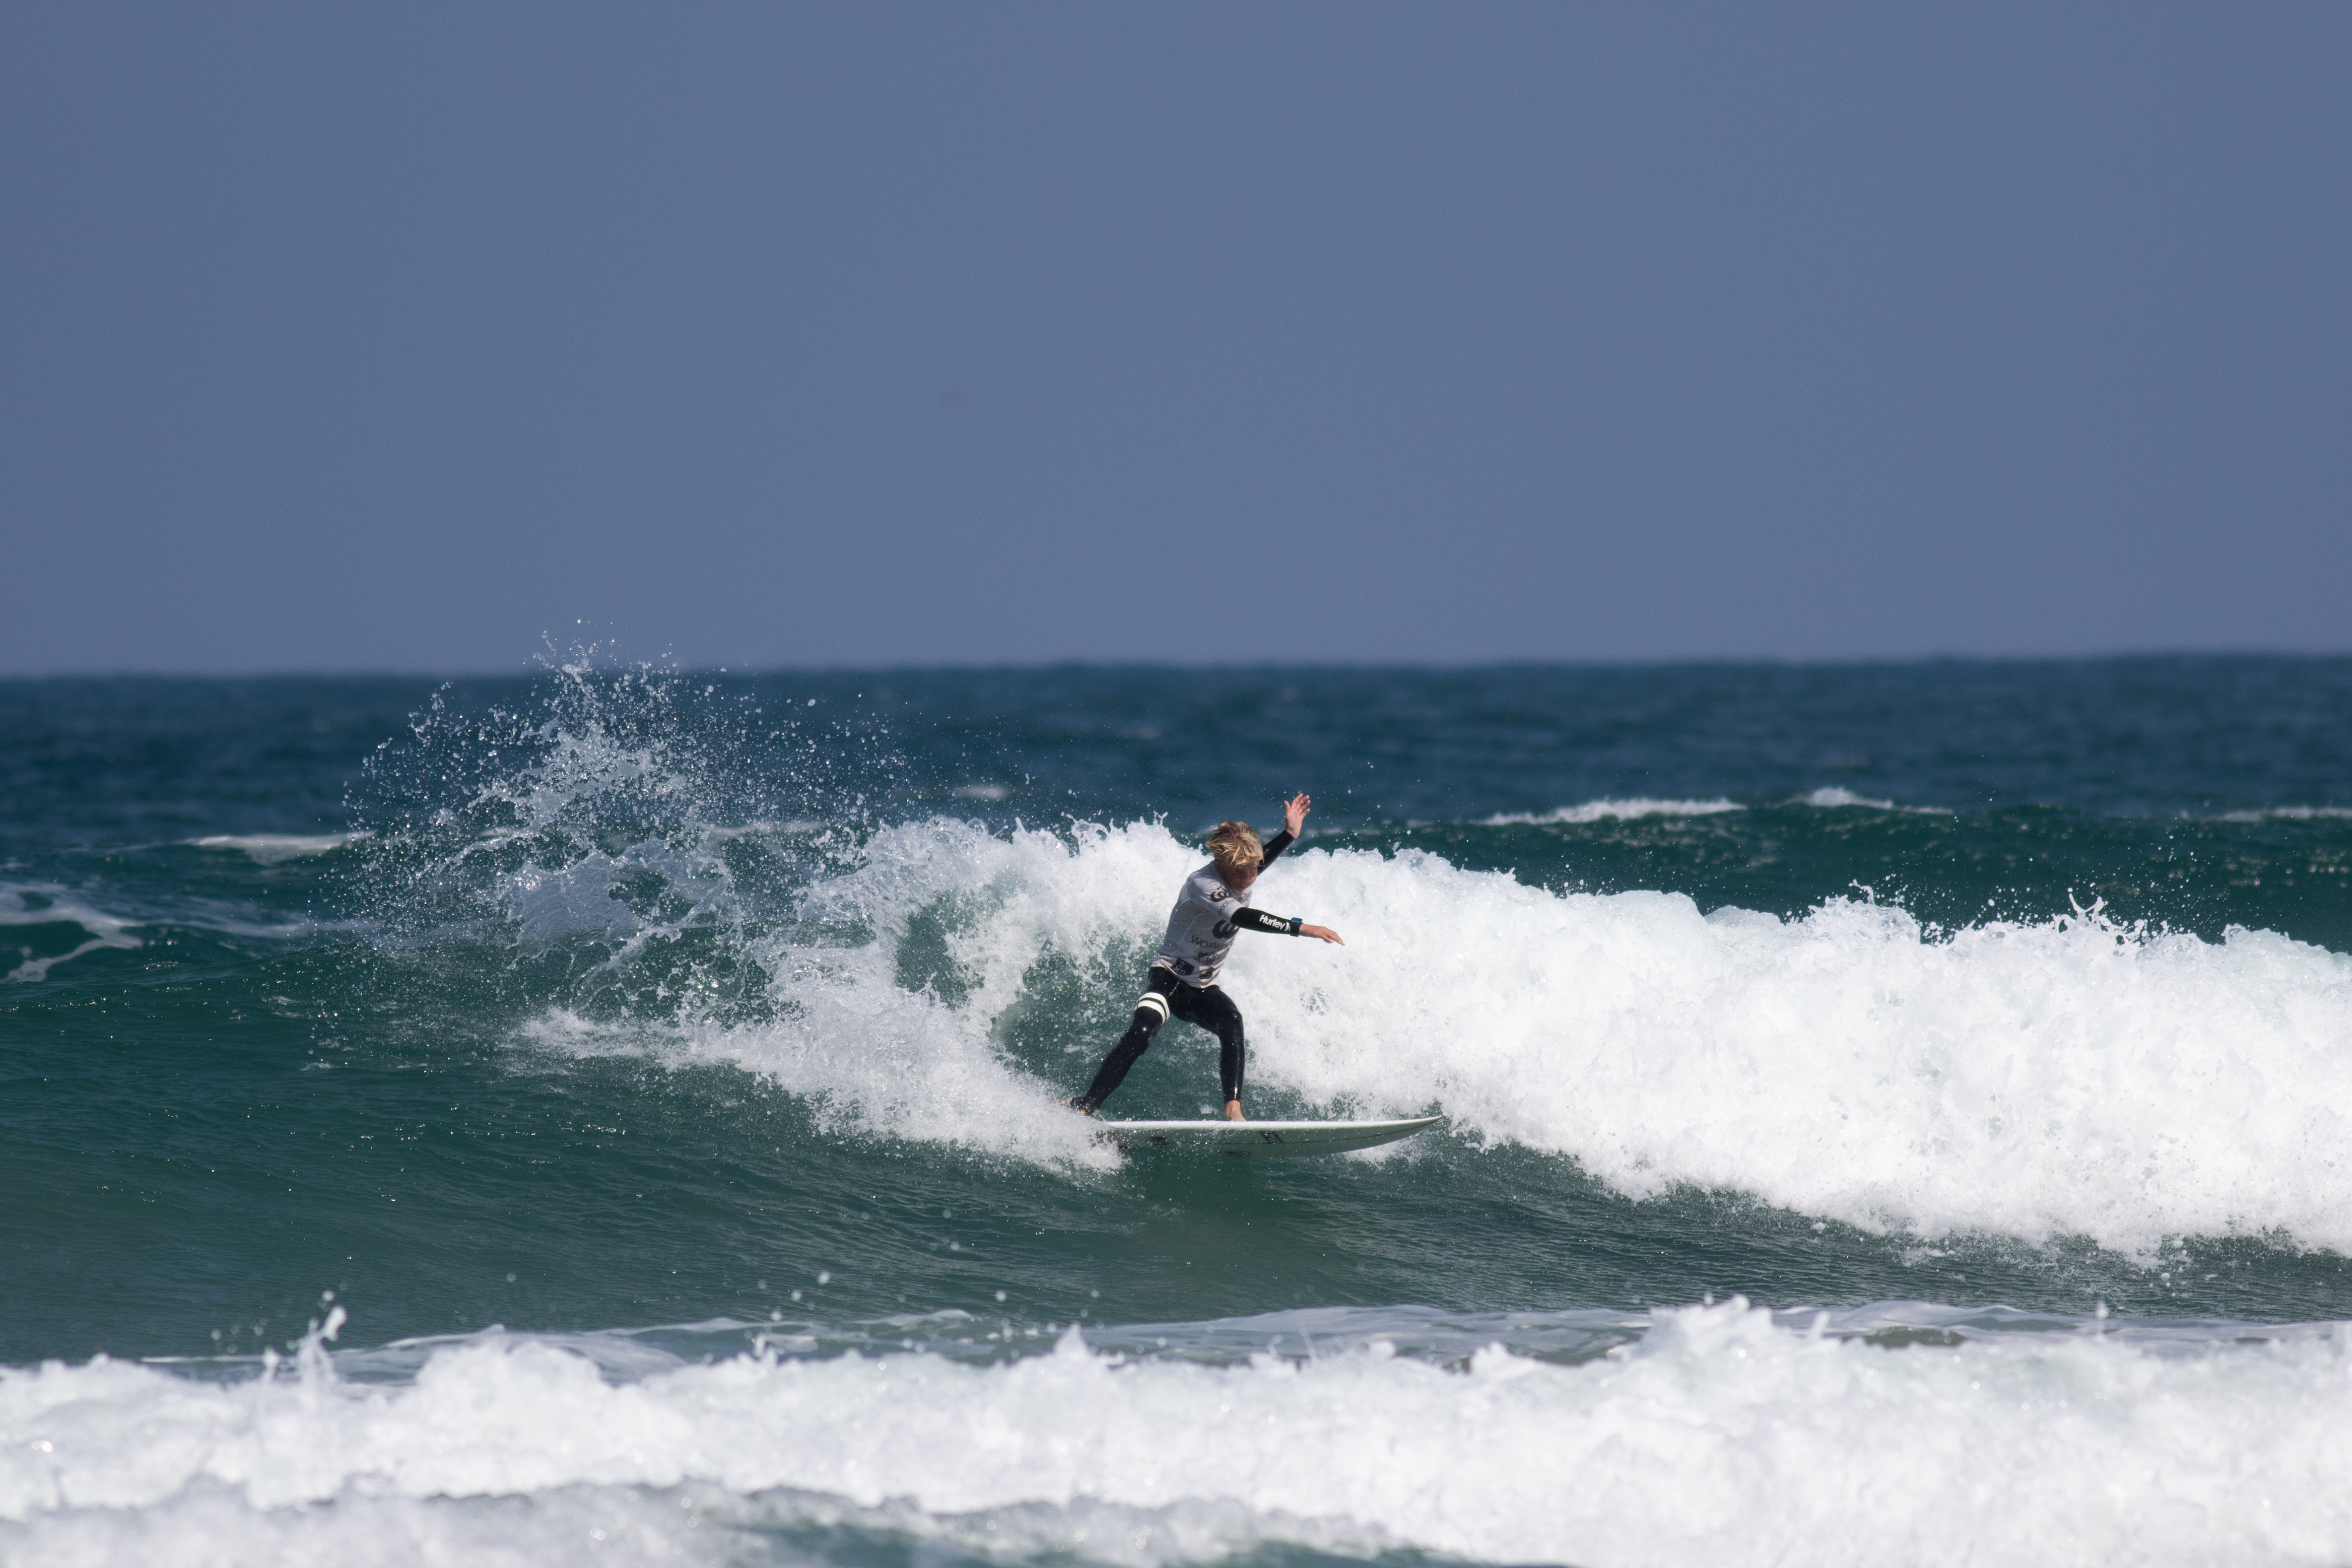 Tanner Reid Woolworths Surfer Grom Comp2019 Zl 022